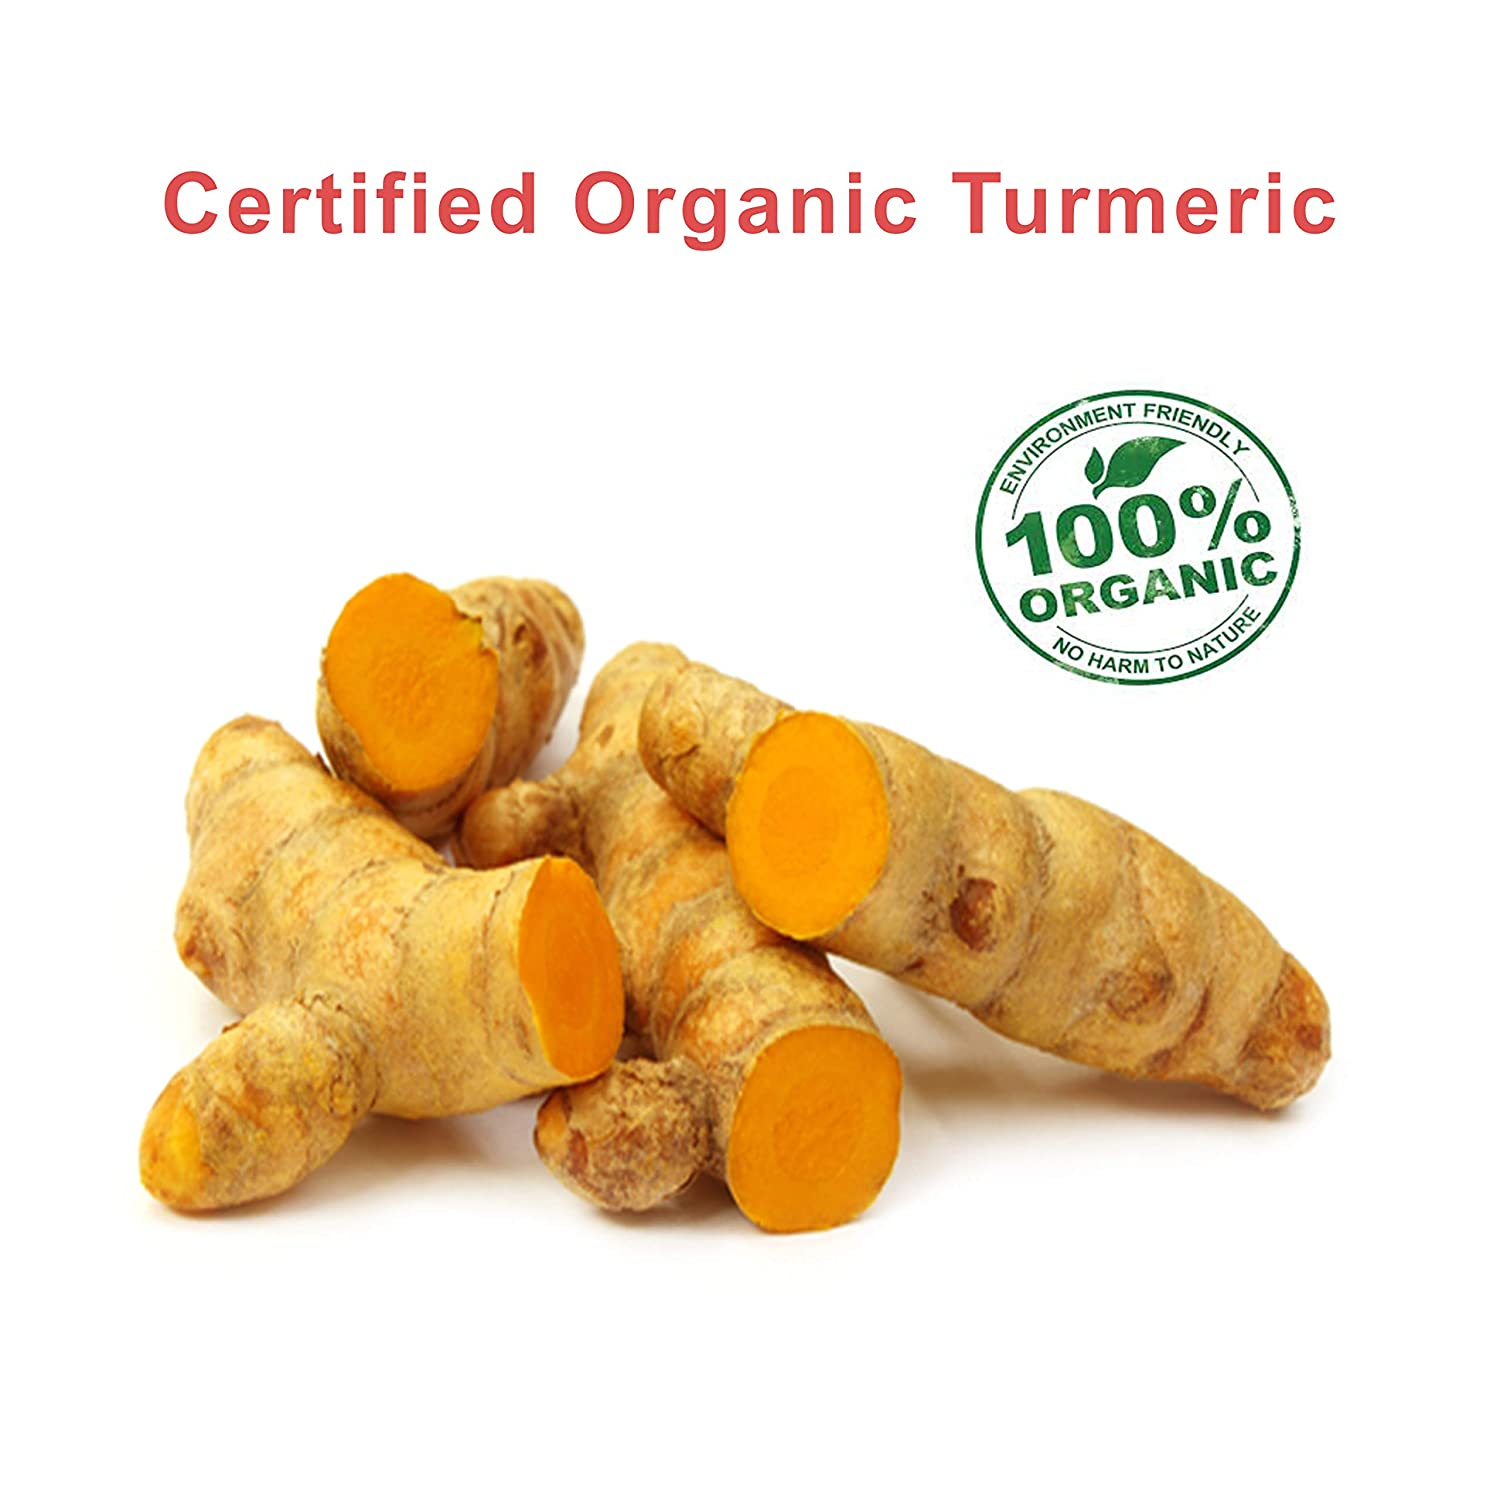 ORGANIC TUMERIC CURCUMIN SUPPLEMENT WITH BLACK PEPPER 120 TABLETS Not Capsules for women and men adults